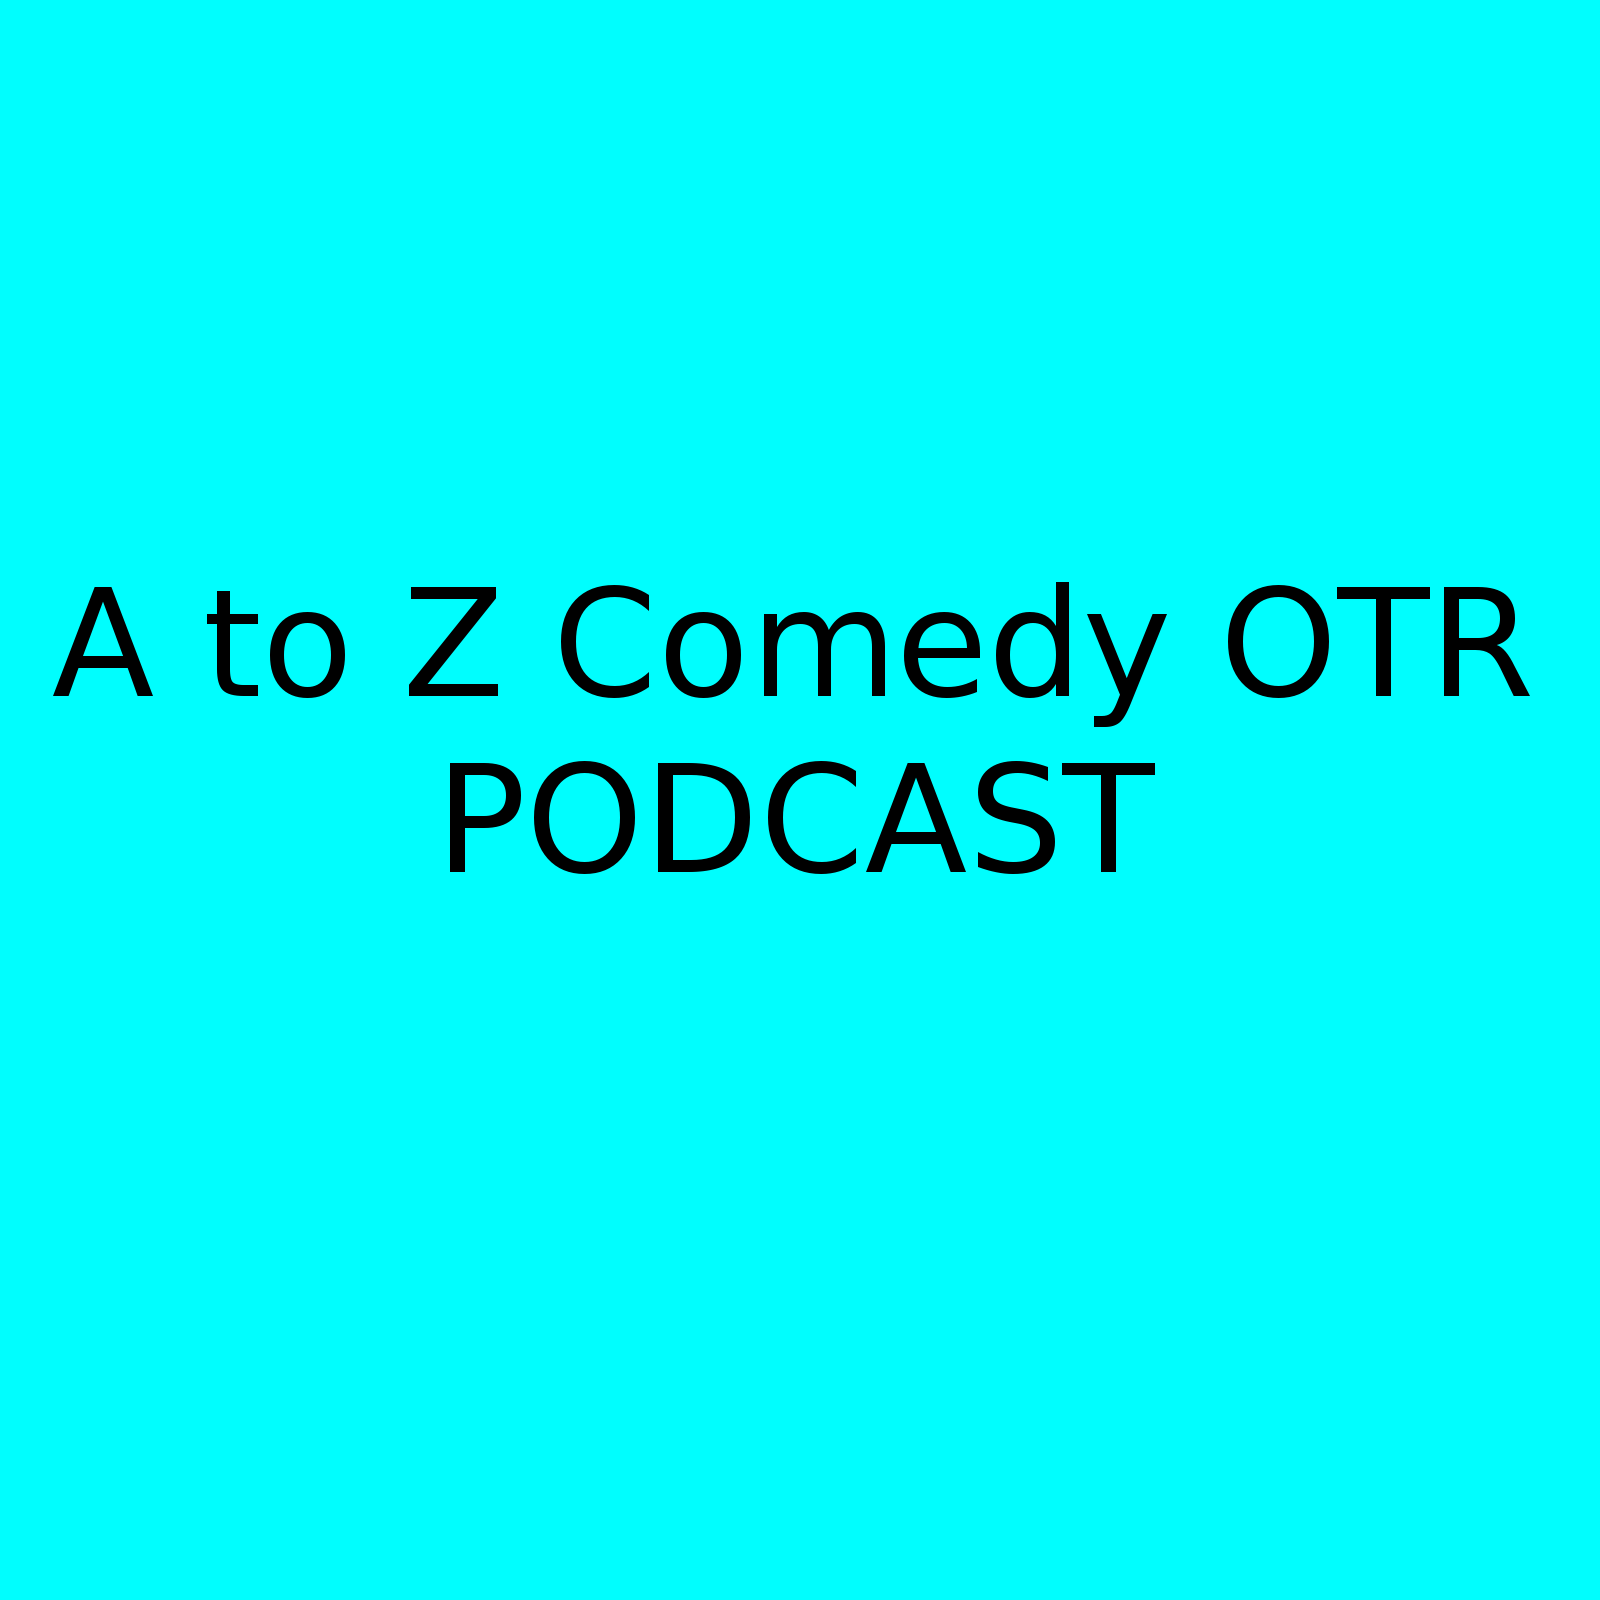 A to Z Comedy OTR Podcast Show #64